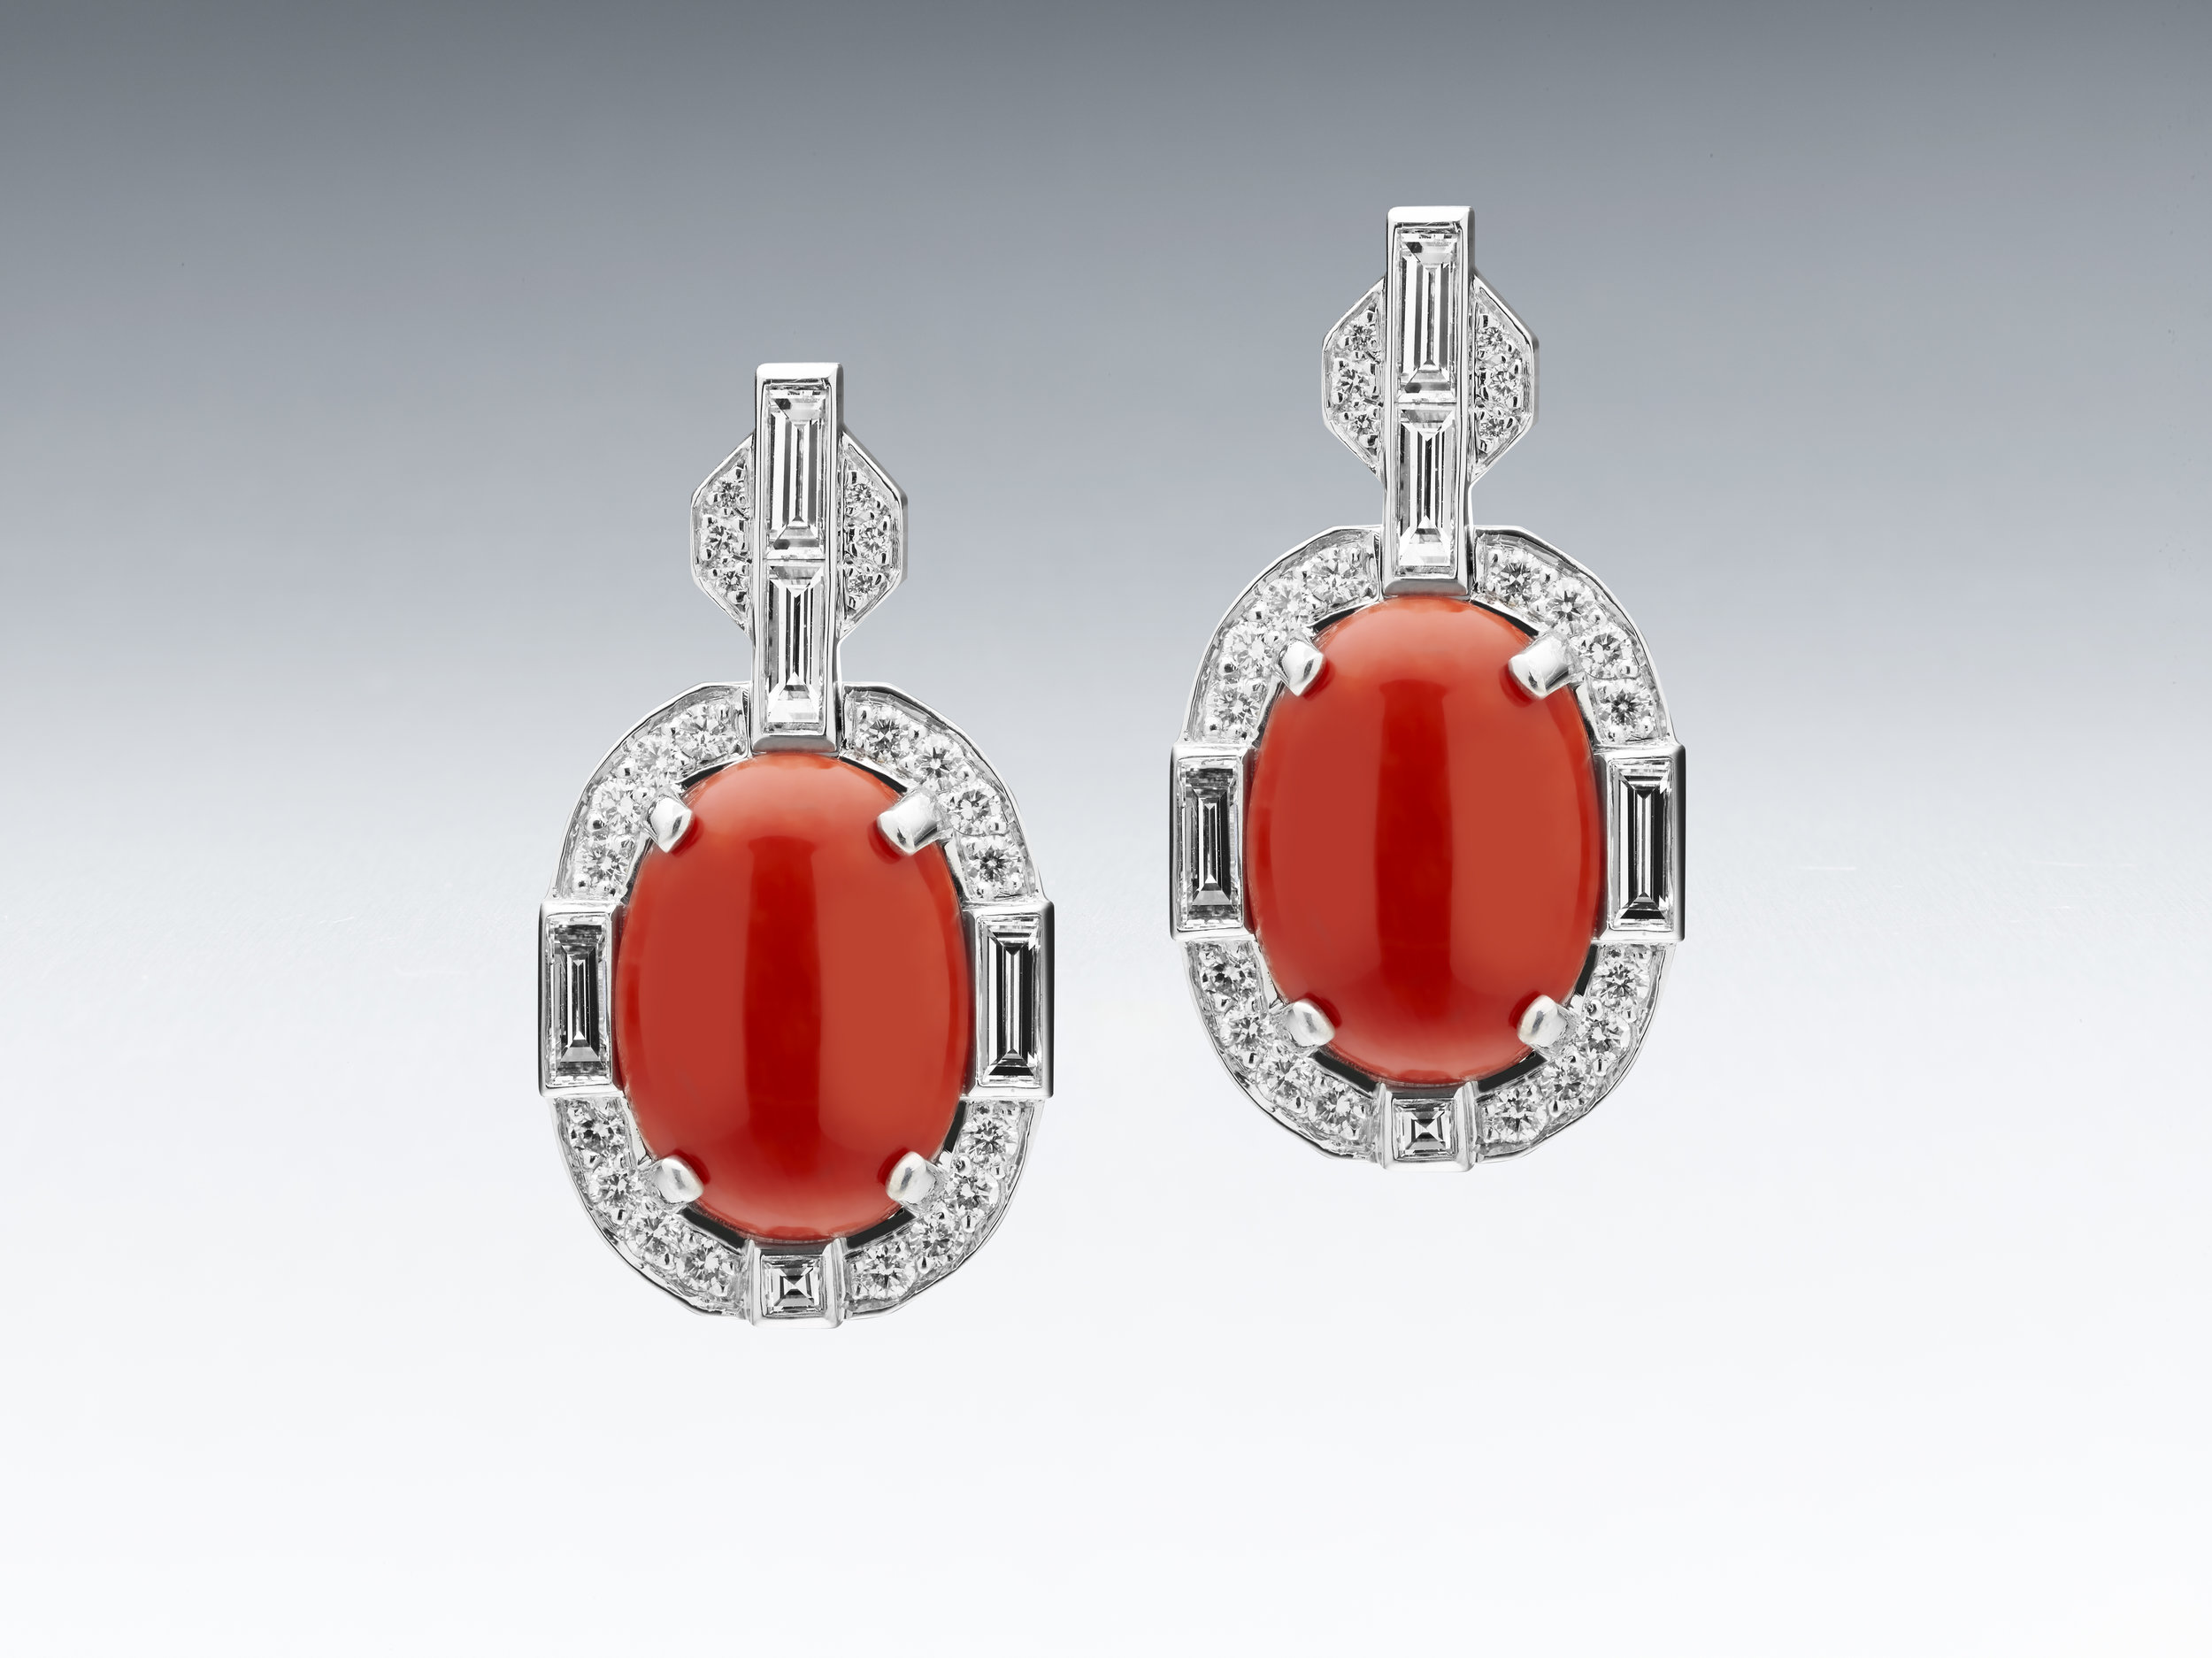 BUNDA 'COUTURE' EARRINGS WITH PRECIOUS CORAL CABOCHONS AND DIAMONDS